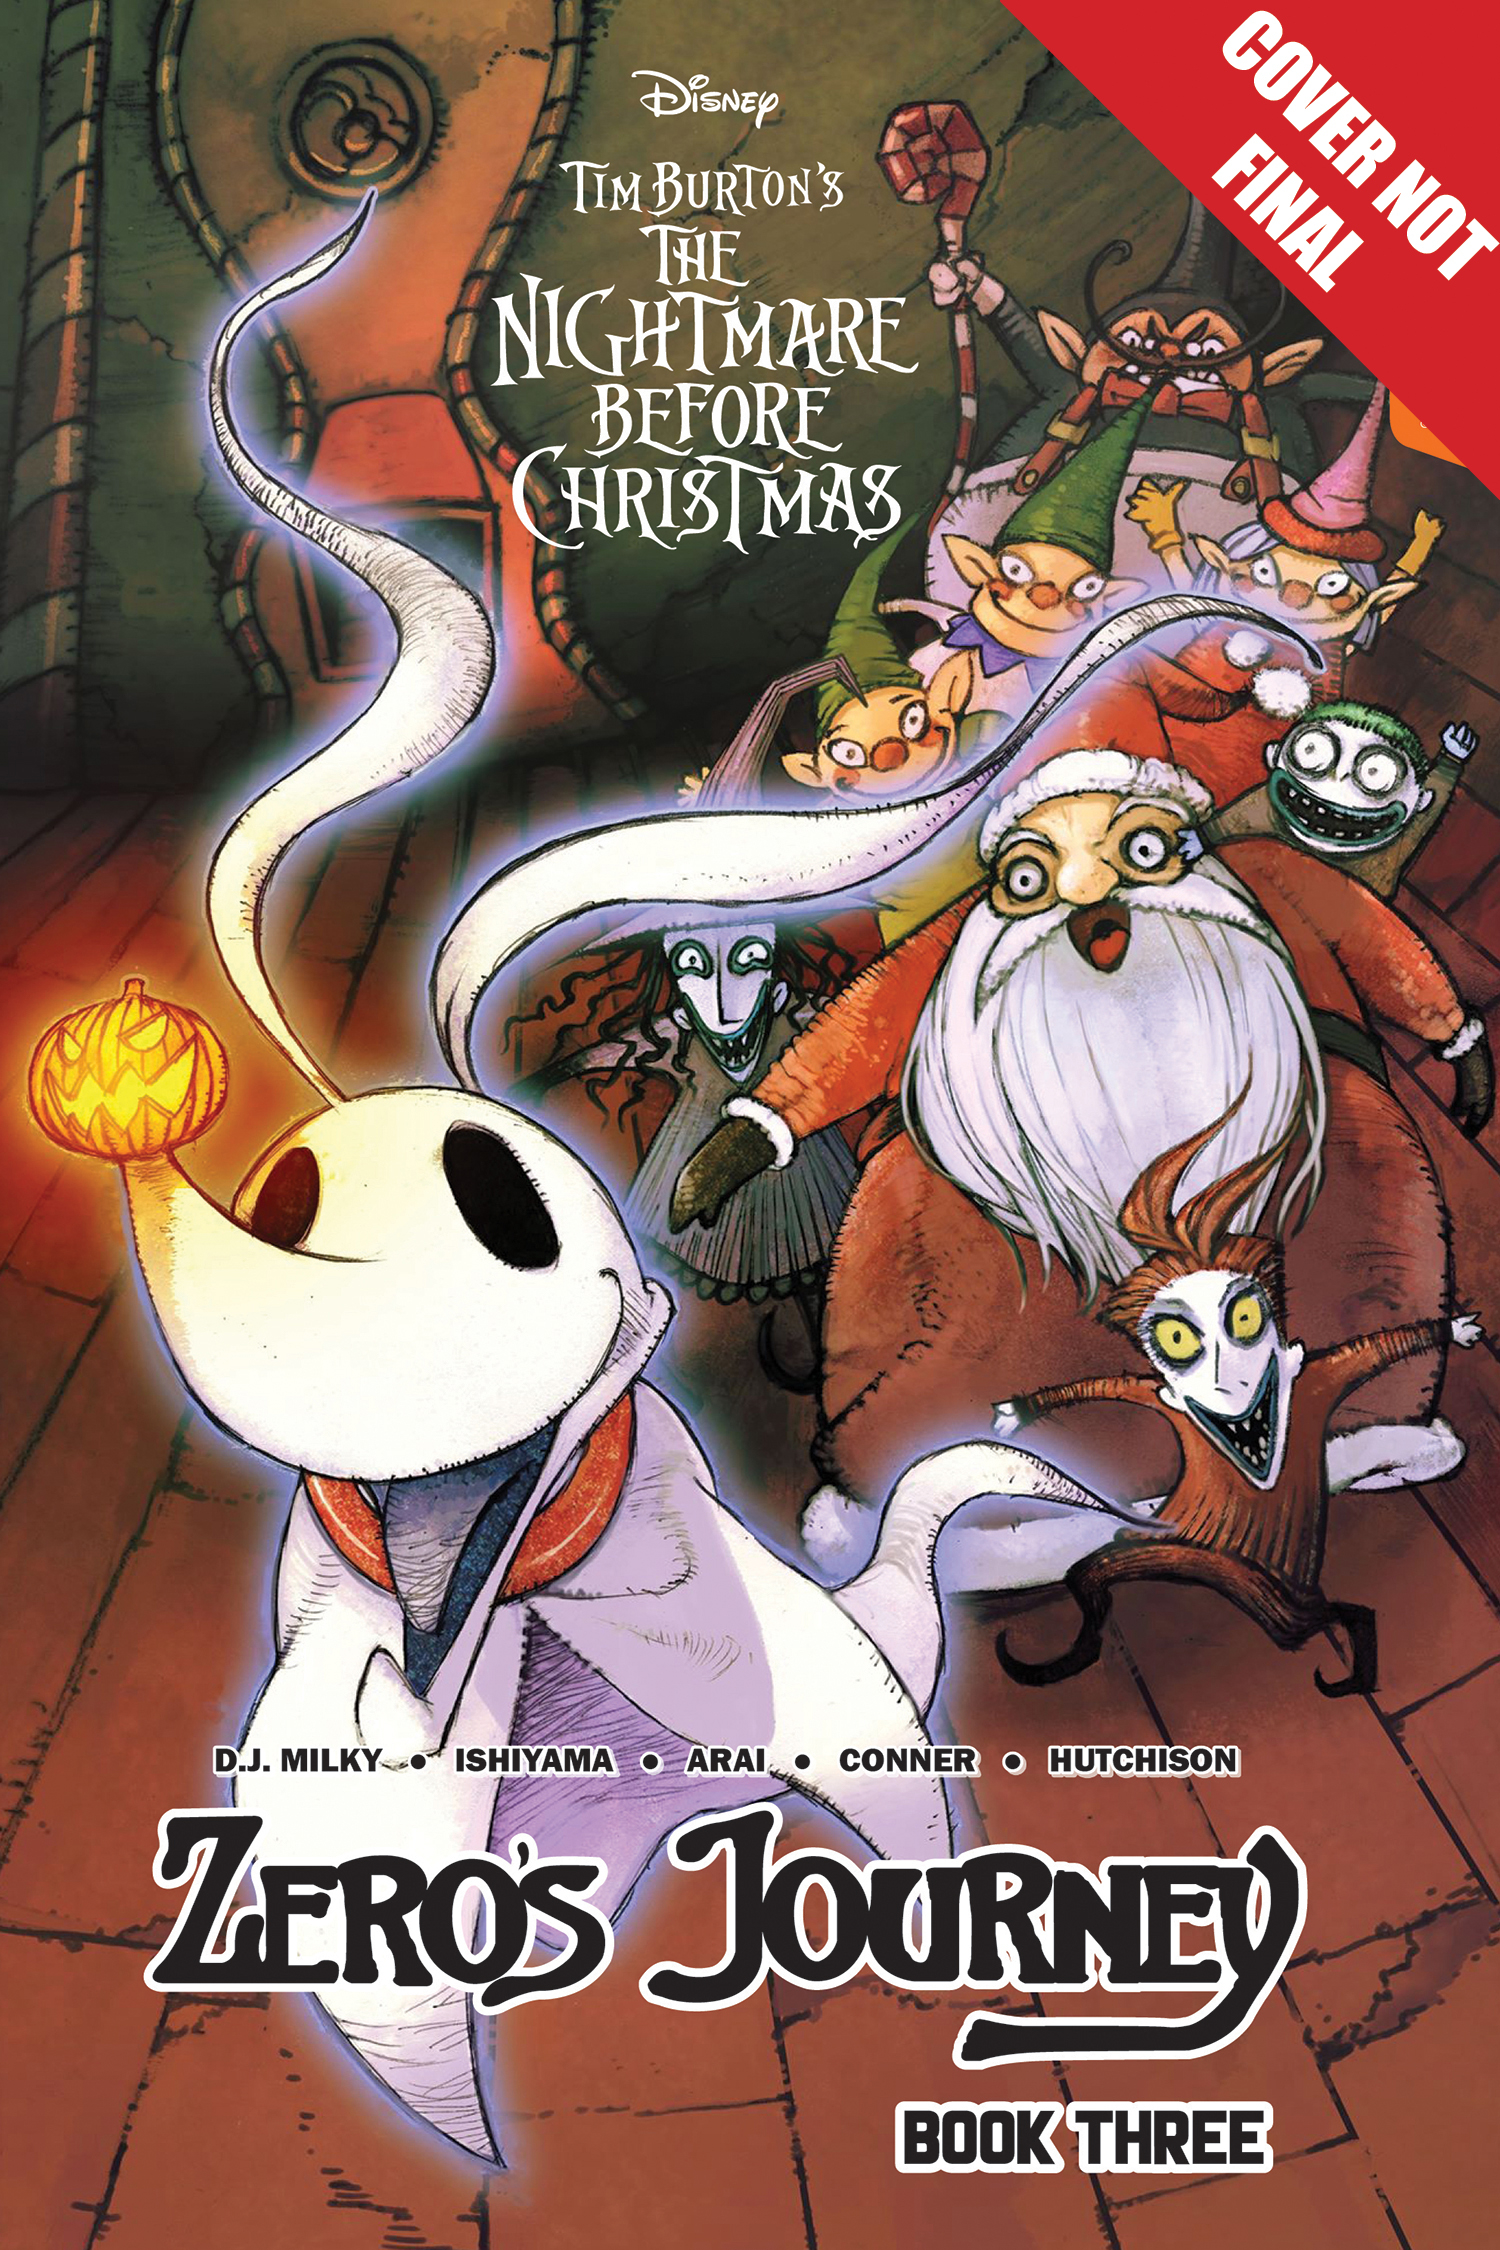 DISNEY MANGA NIGHTMARE CHRISTMAS ZEROS JOURNEY TP VOL 03 (JU